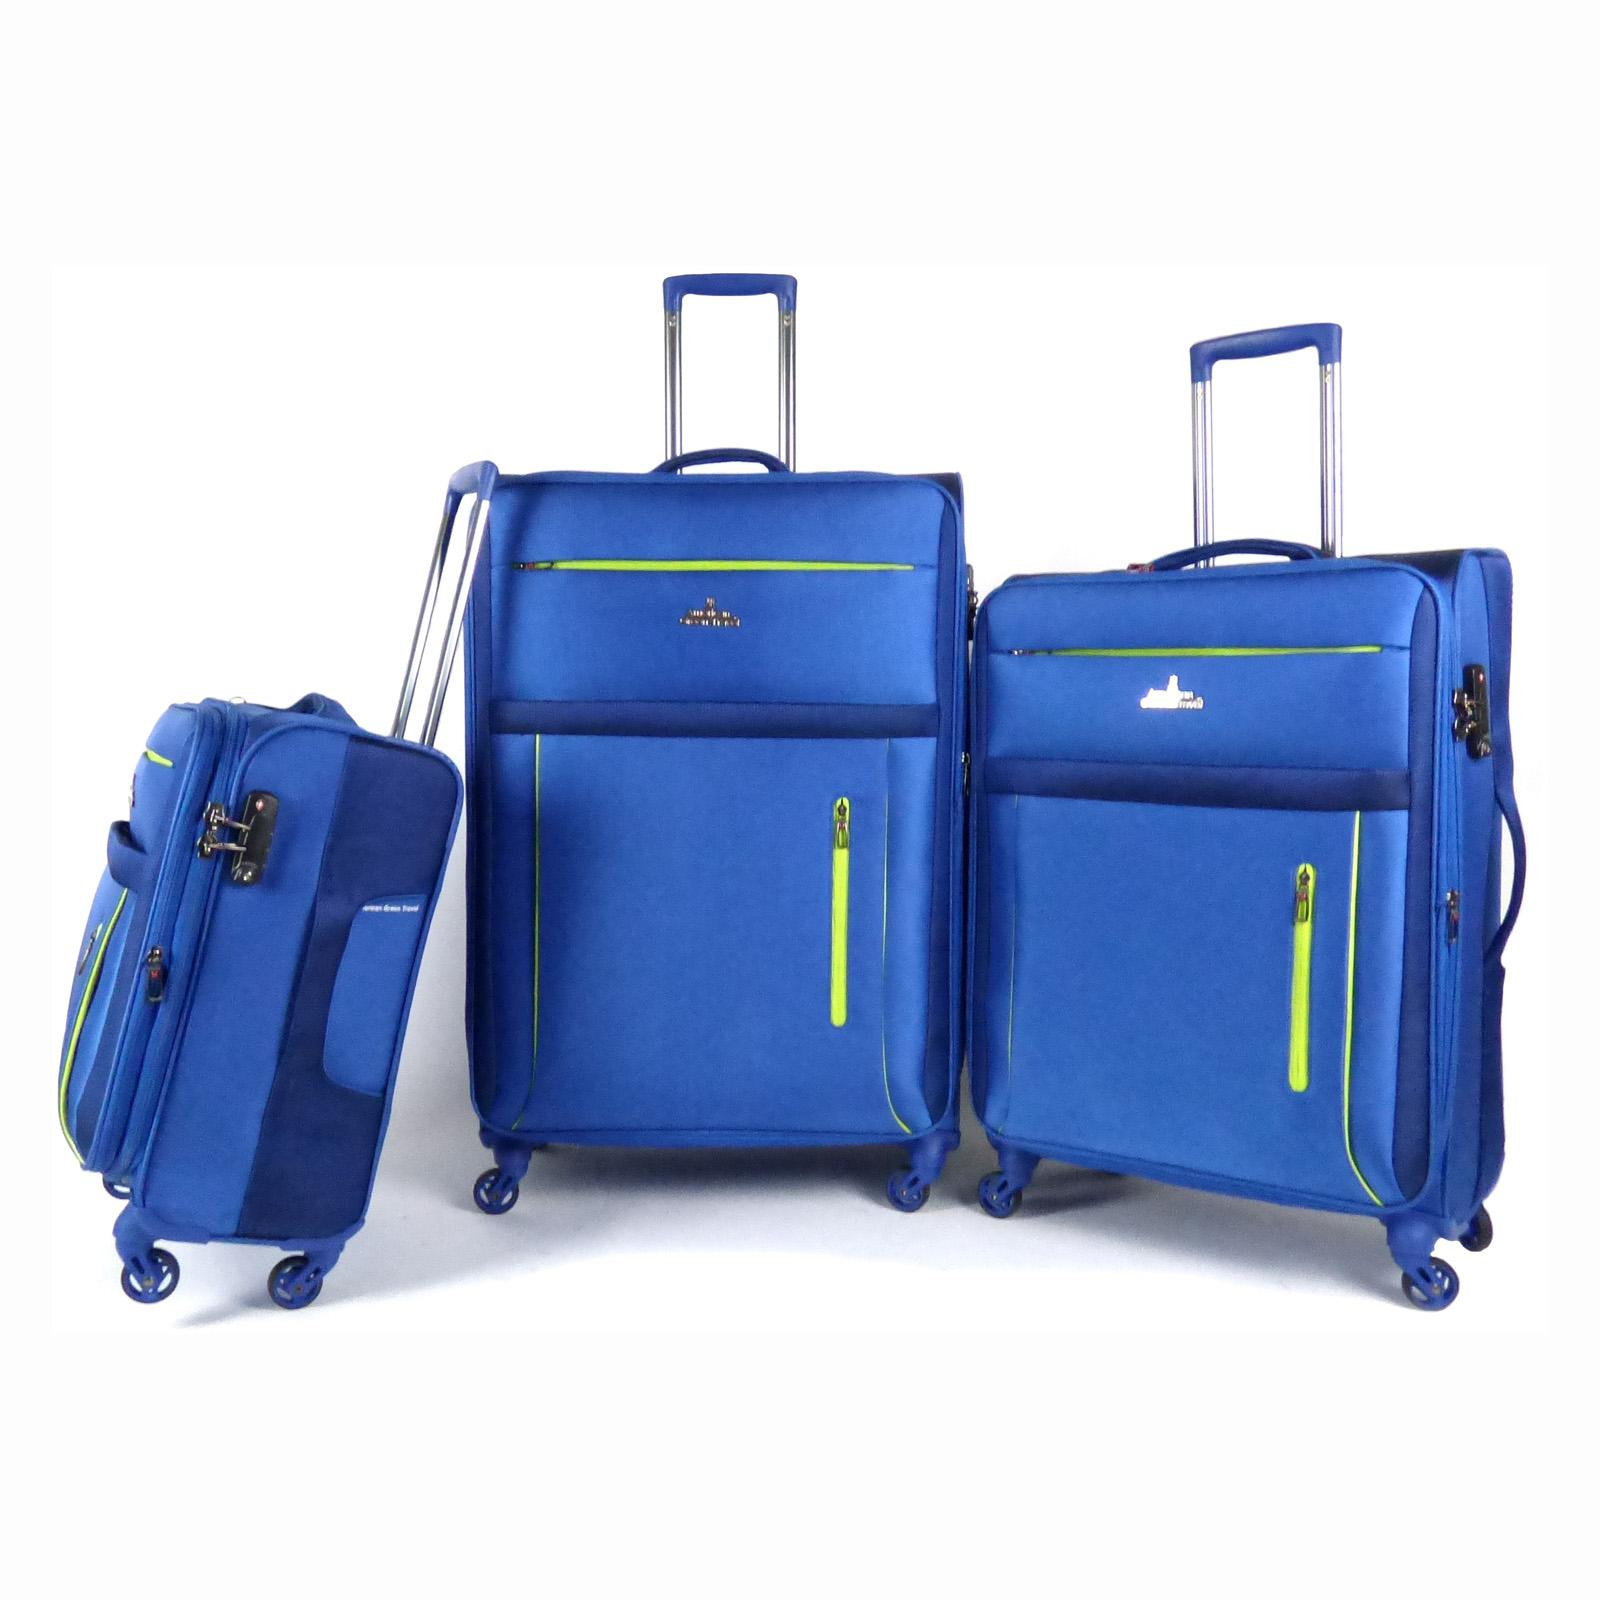 American Green Travel Soteria 3 Piece Luggage Set Navy - ...